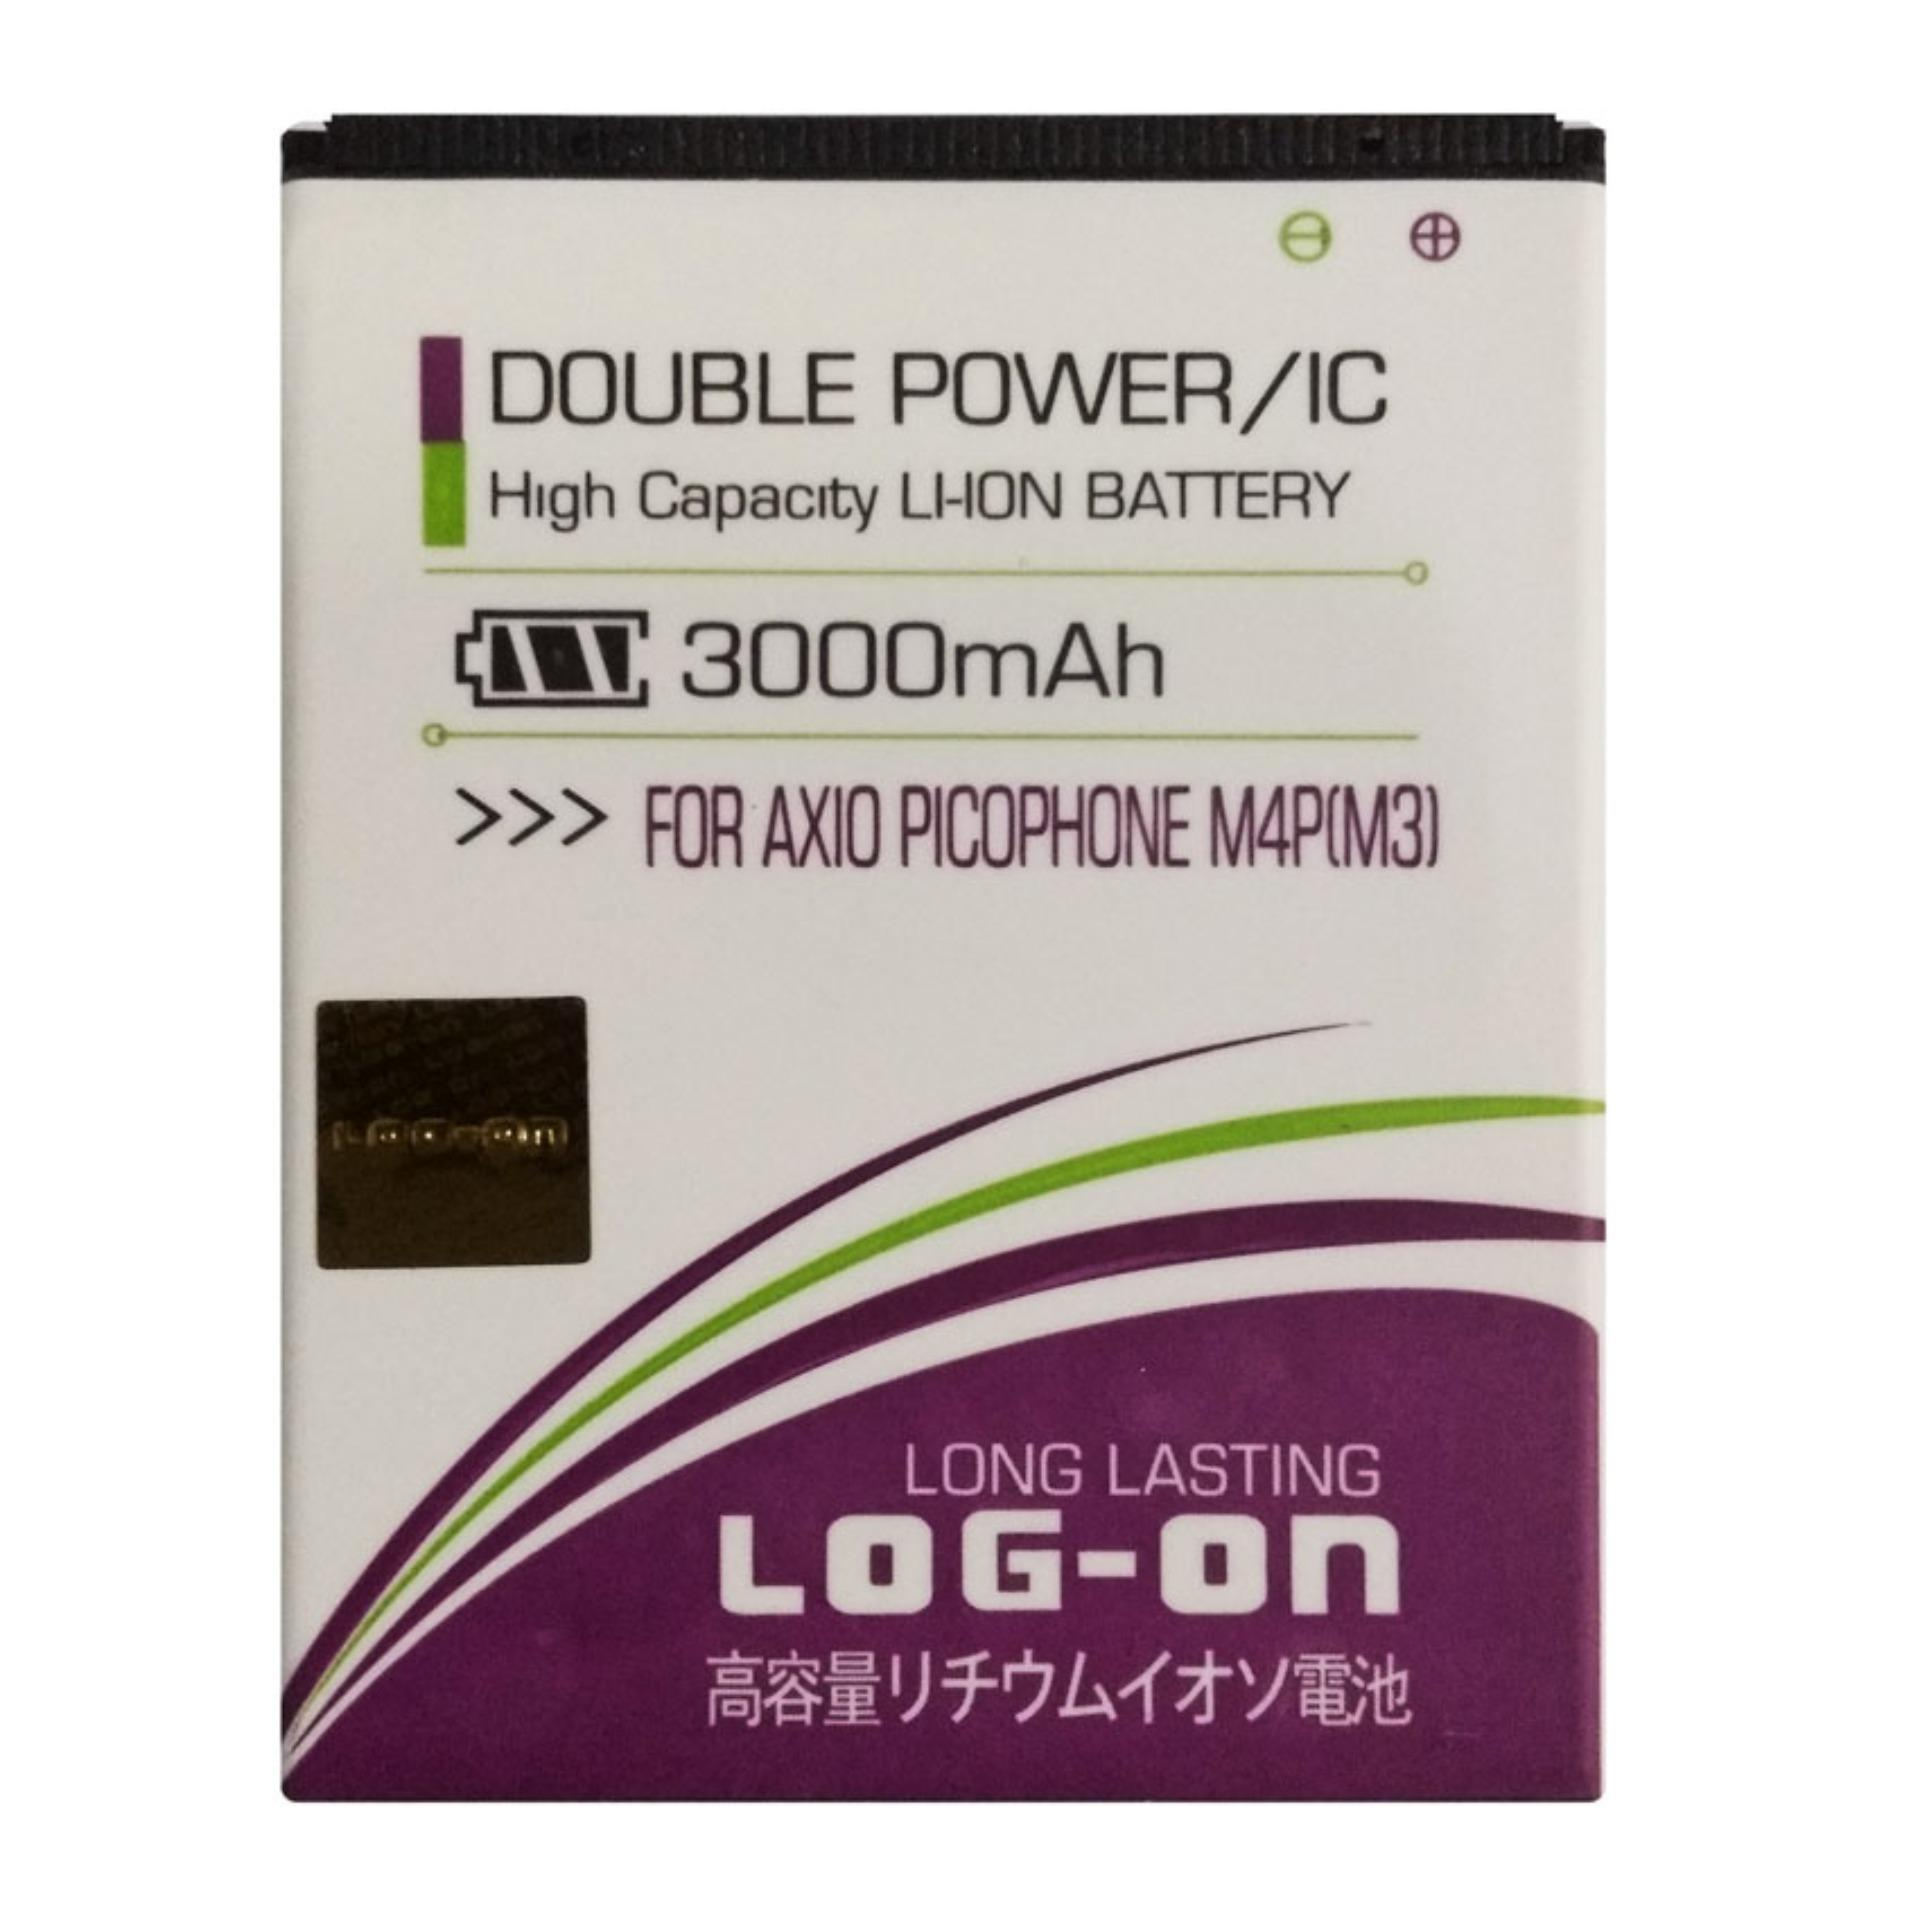 Log On Baterai Axioo Picophone M4p (M3) - Double Power Battery - 3000 mAh